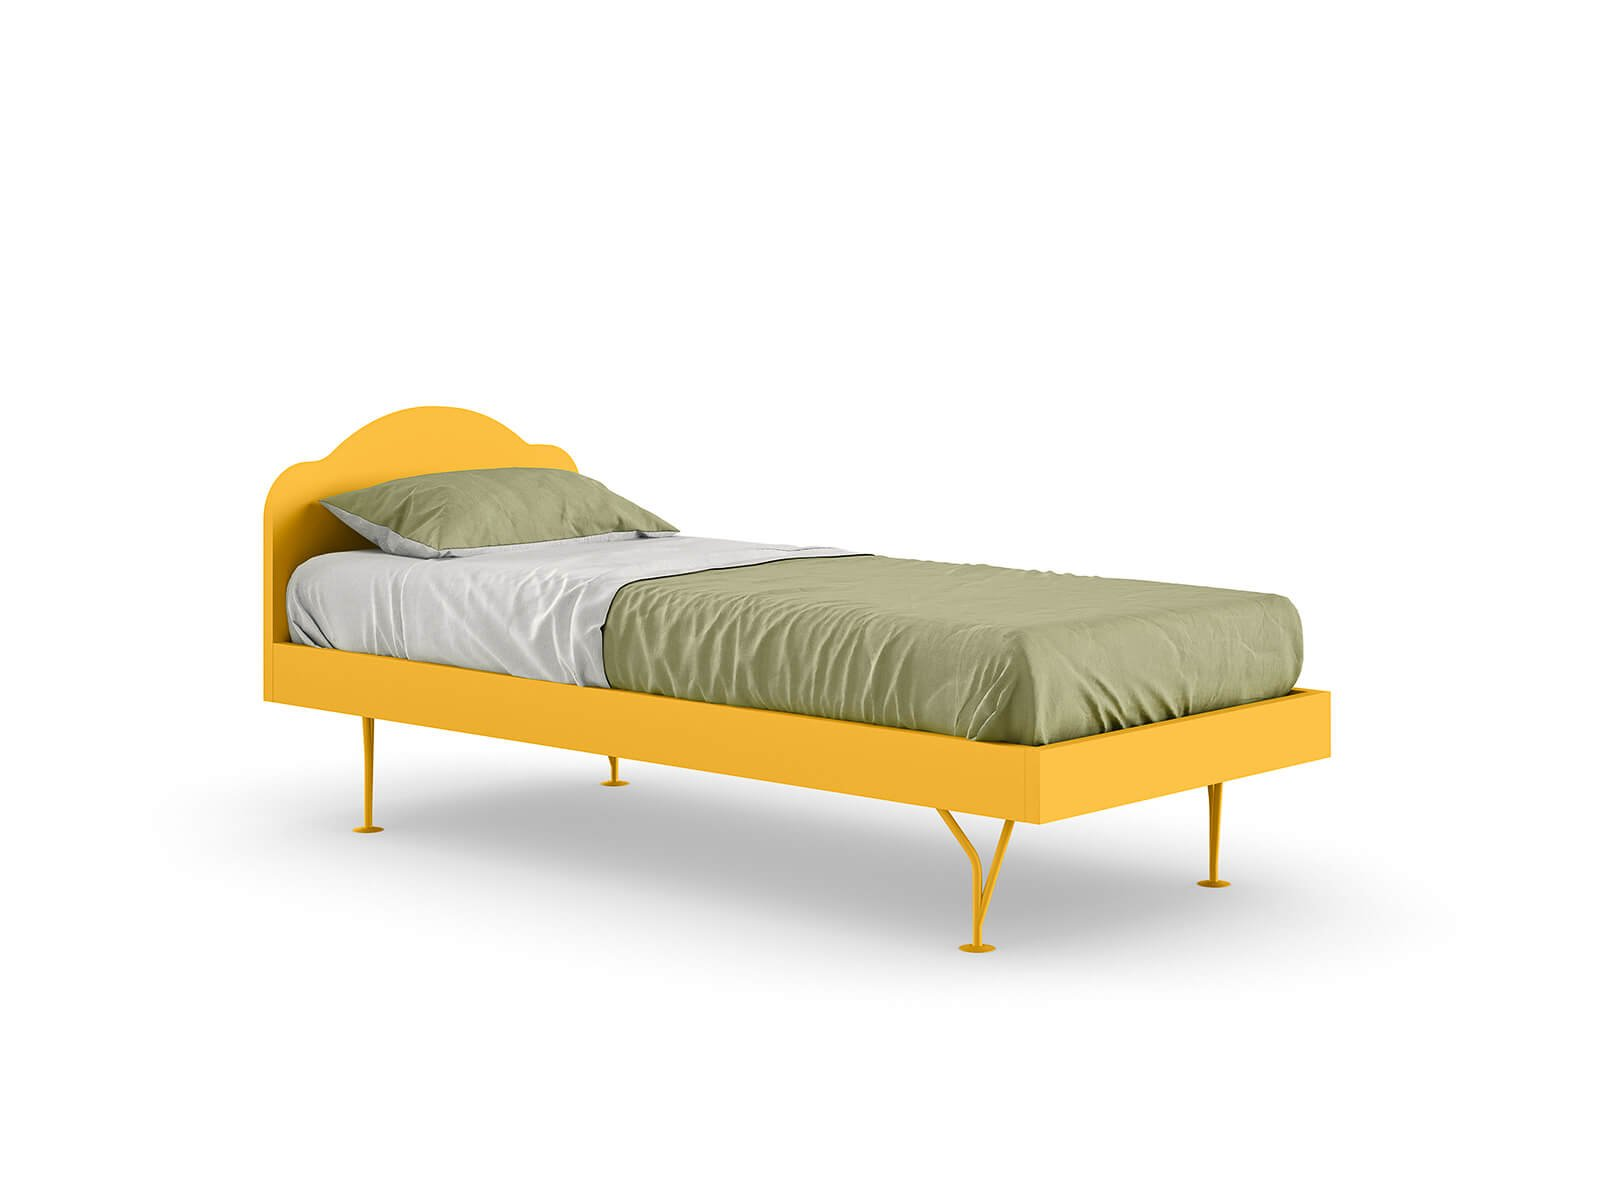 Mino single bed